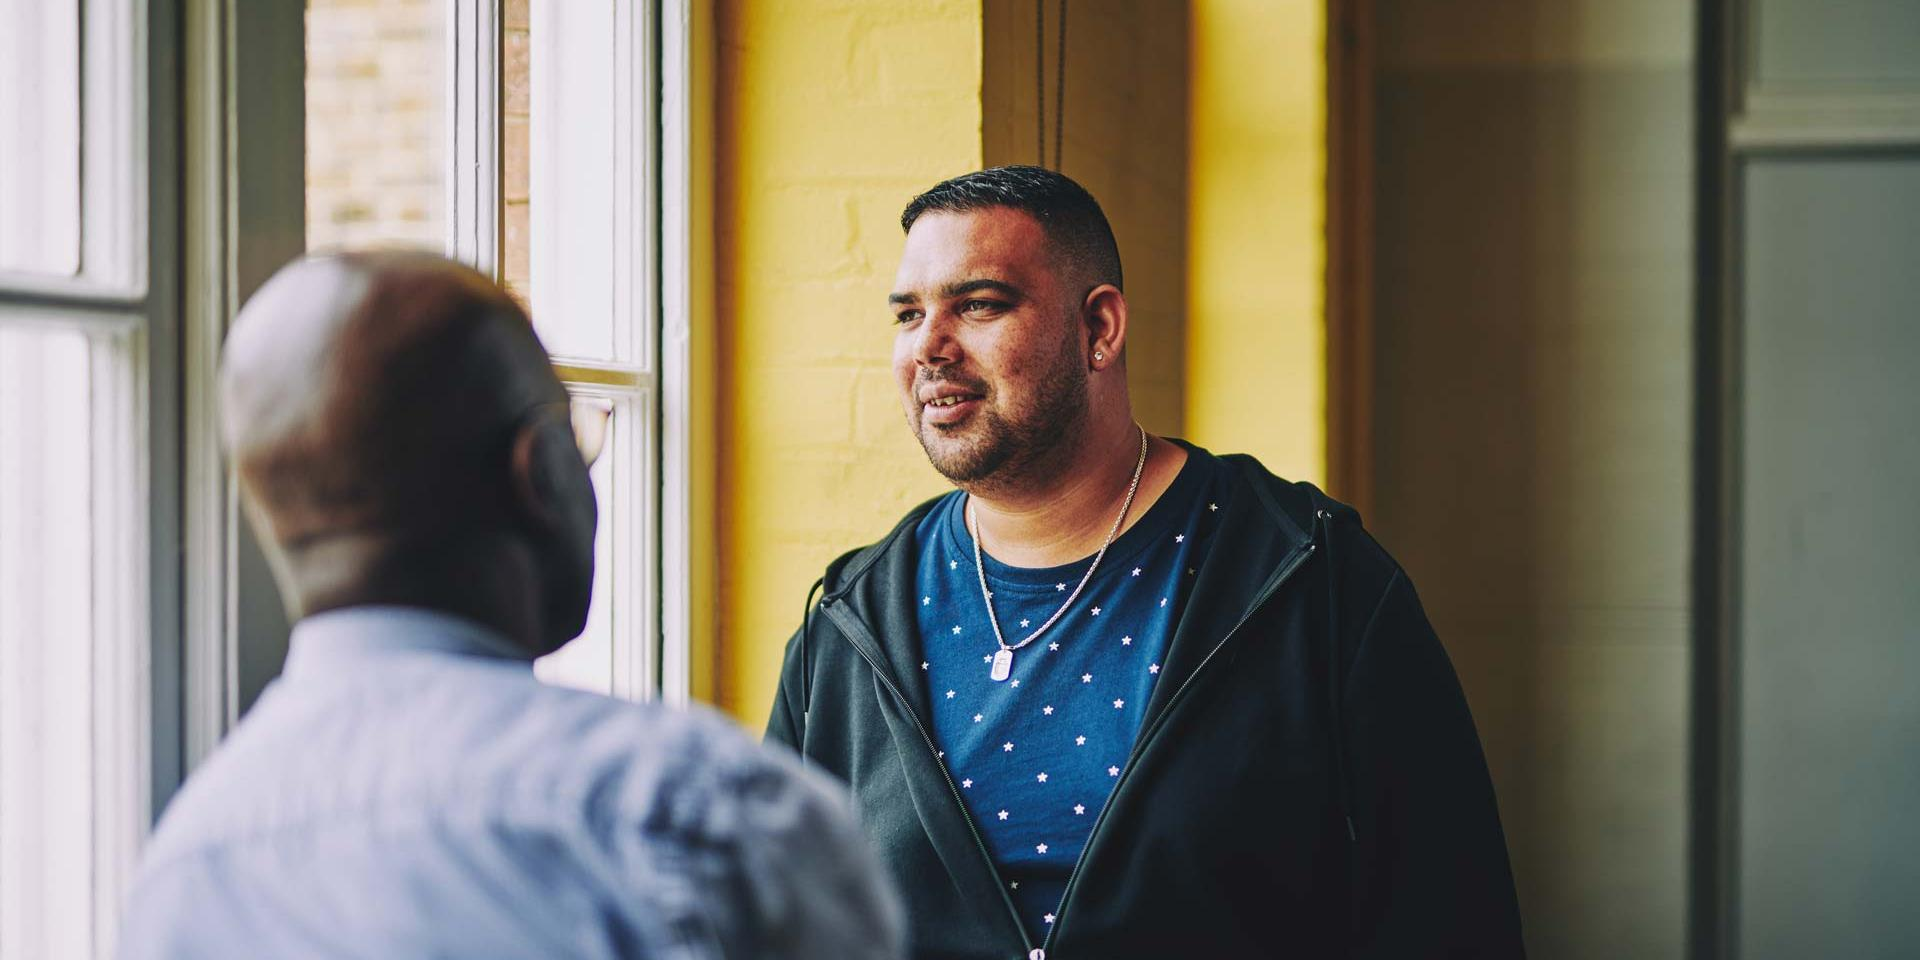 man having a conversation with another man and looking off into the distance